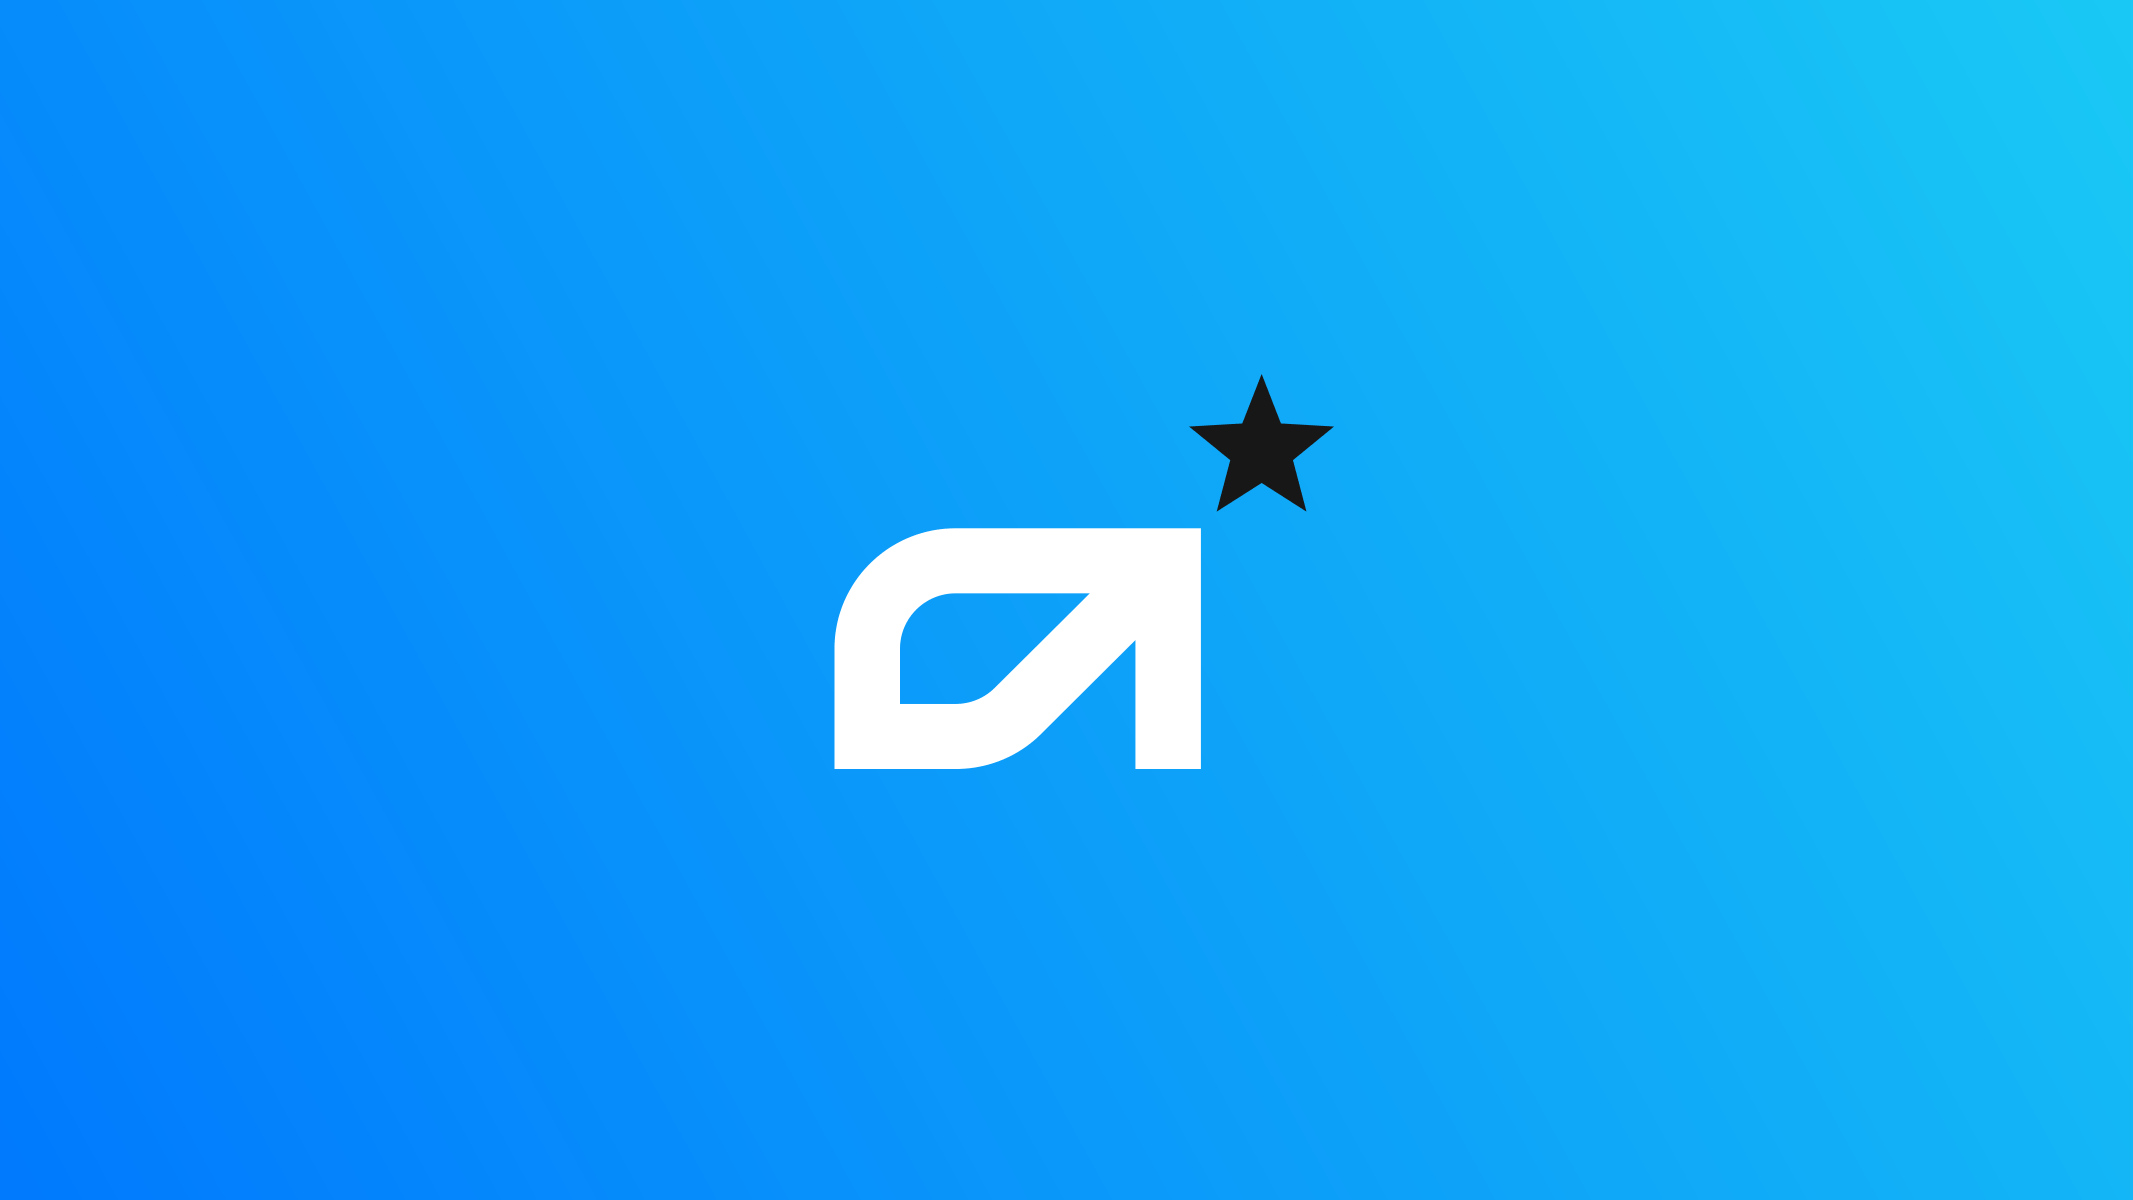 Astro Gaming Wallpapers.